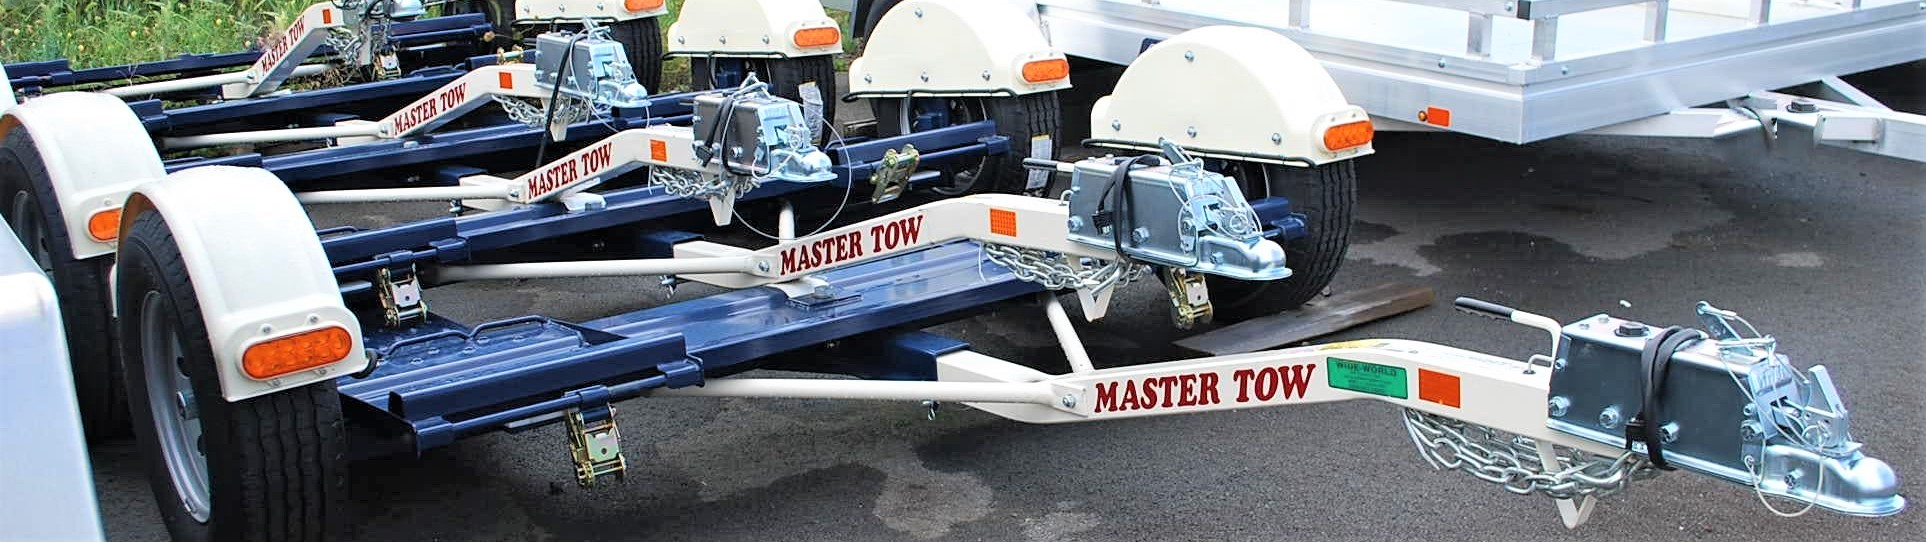 4 Master Tow dolly parked